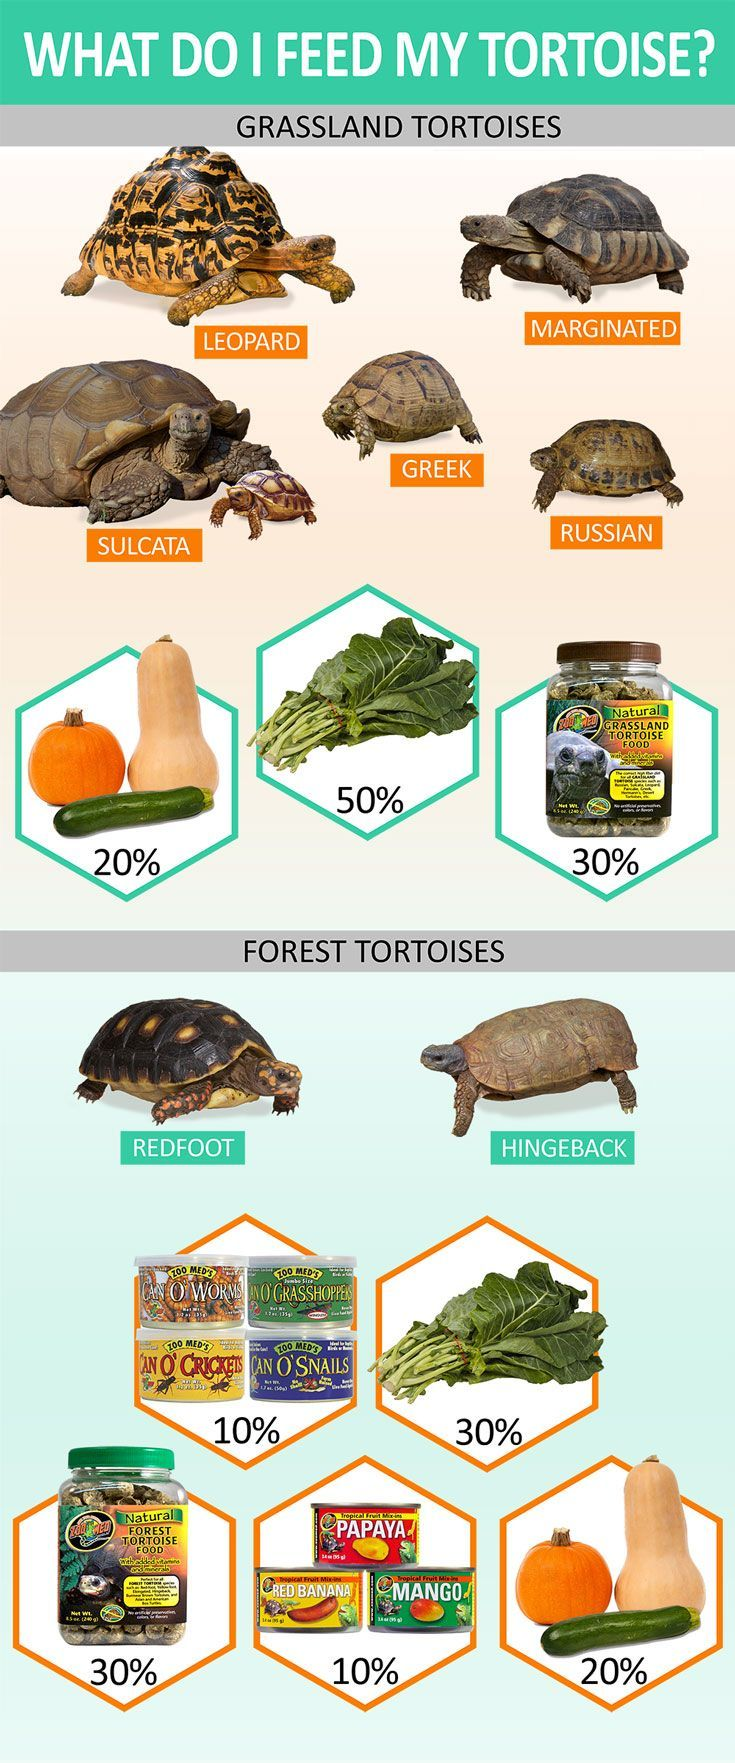 Know what to feed your tortoise depending on what type it is. Grassland Tortoises diet should consist of 10-20% chopped or shredded veggies, 50-60% fresh greens, and 30% Grassland Tortoise pellets soaked in water. Forest tortoises diet should be 10% animal protein (such as Zoo Med Can O' insects), 30% fresh greens, 30% Forest Tortoise pellets soaked in water, 10% fruit (fresh or mix ins), and 20% chopped or shredded veggies.